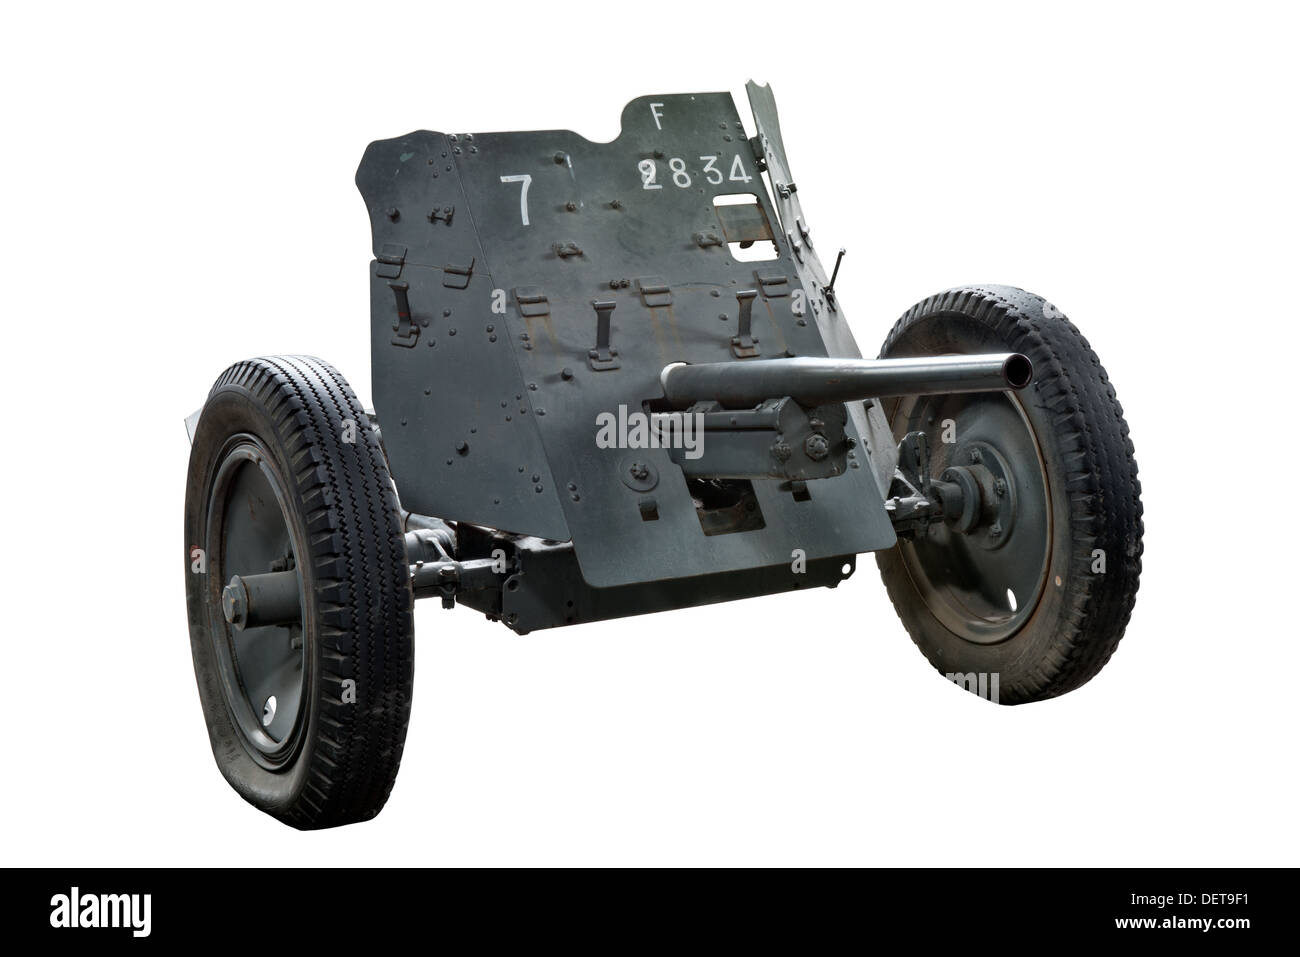 A cut out of PAK 35/36 light anti tank gun used by Nazi German forces during WW2 - Stock Image